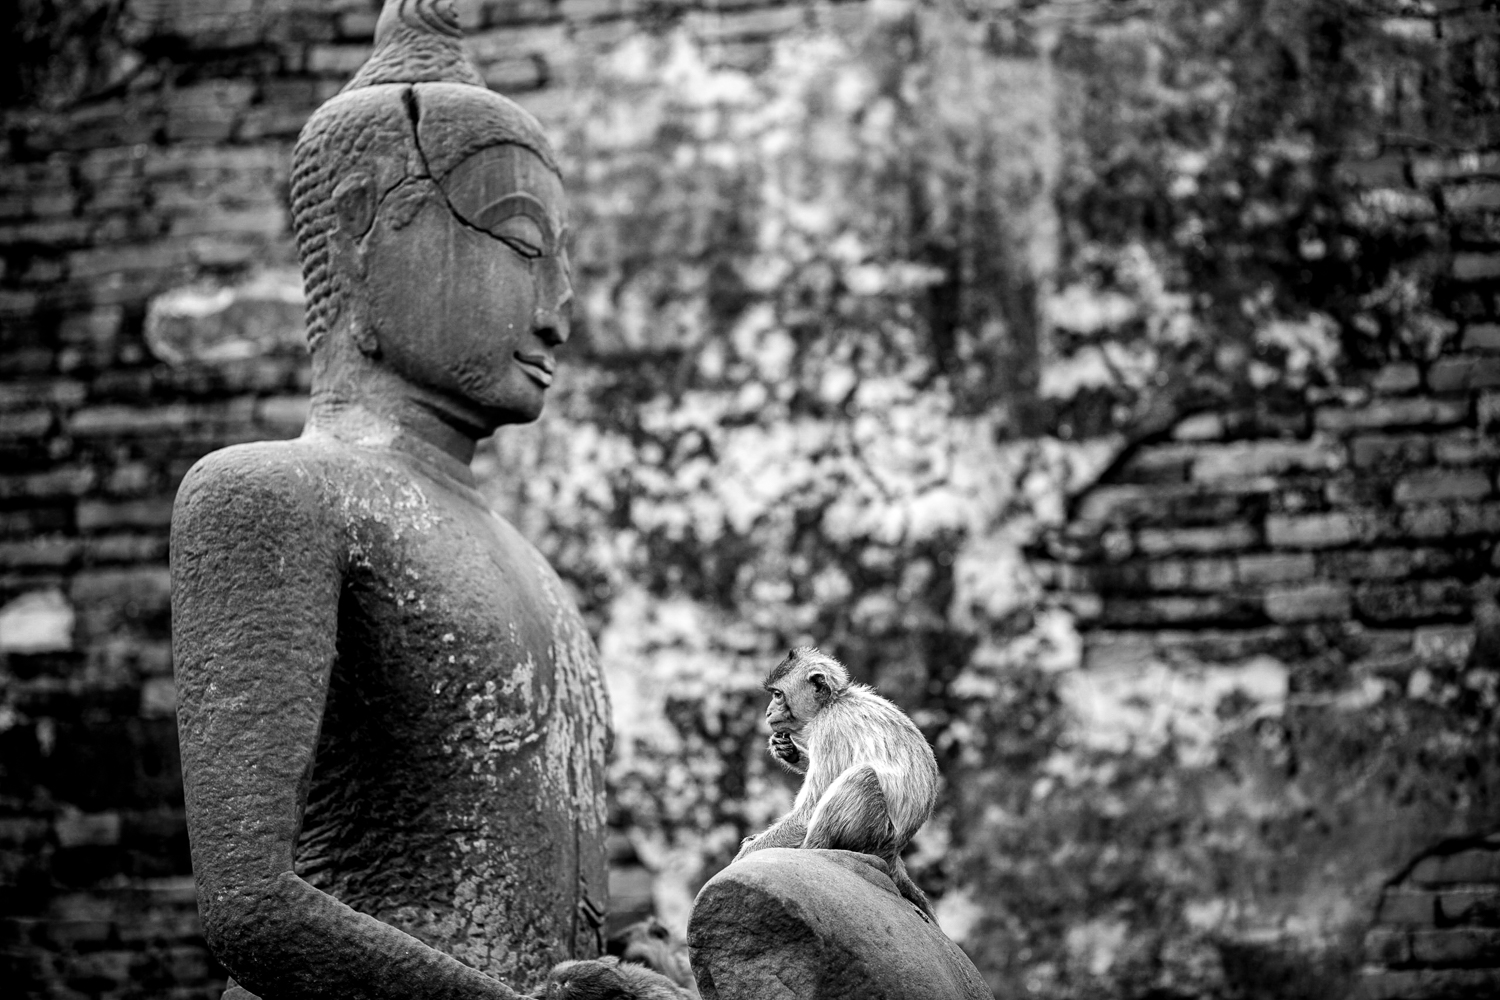 A contemplative monkey at the Prang Sam Yot Temple in Lopburi, Thailand. Lopburi is home to hundreds of rhesus and macaque monkeys.